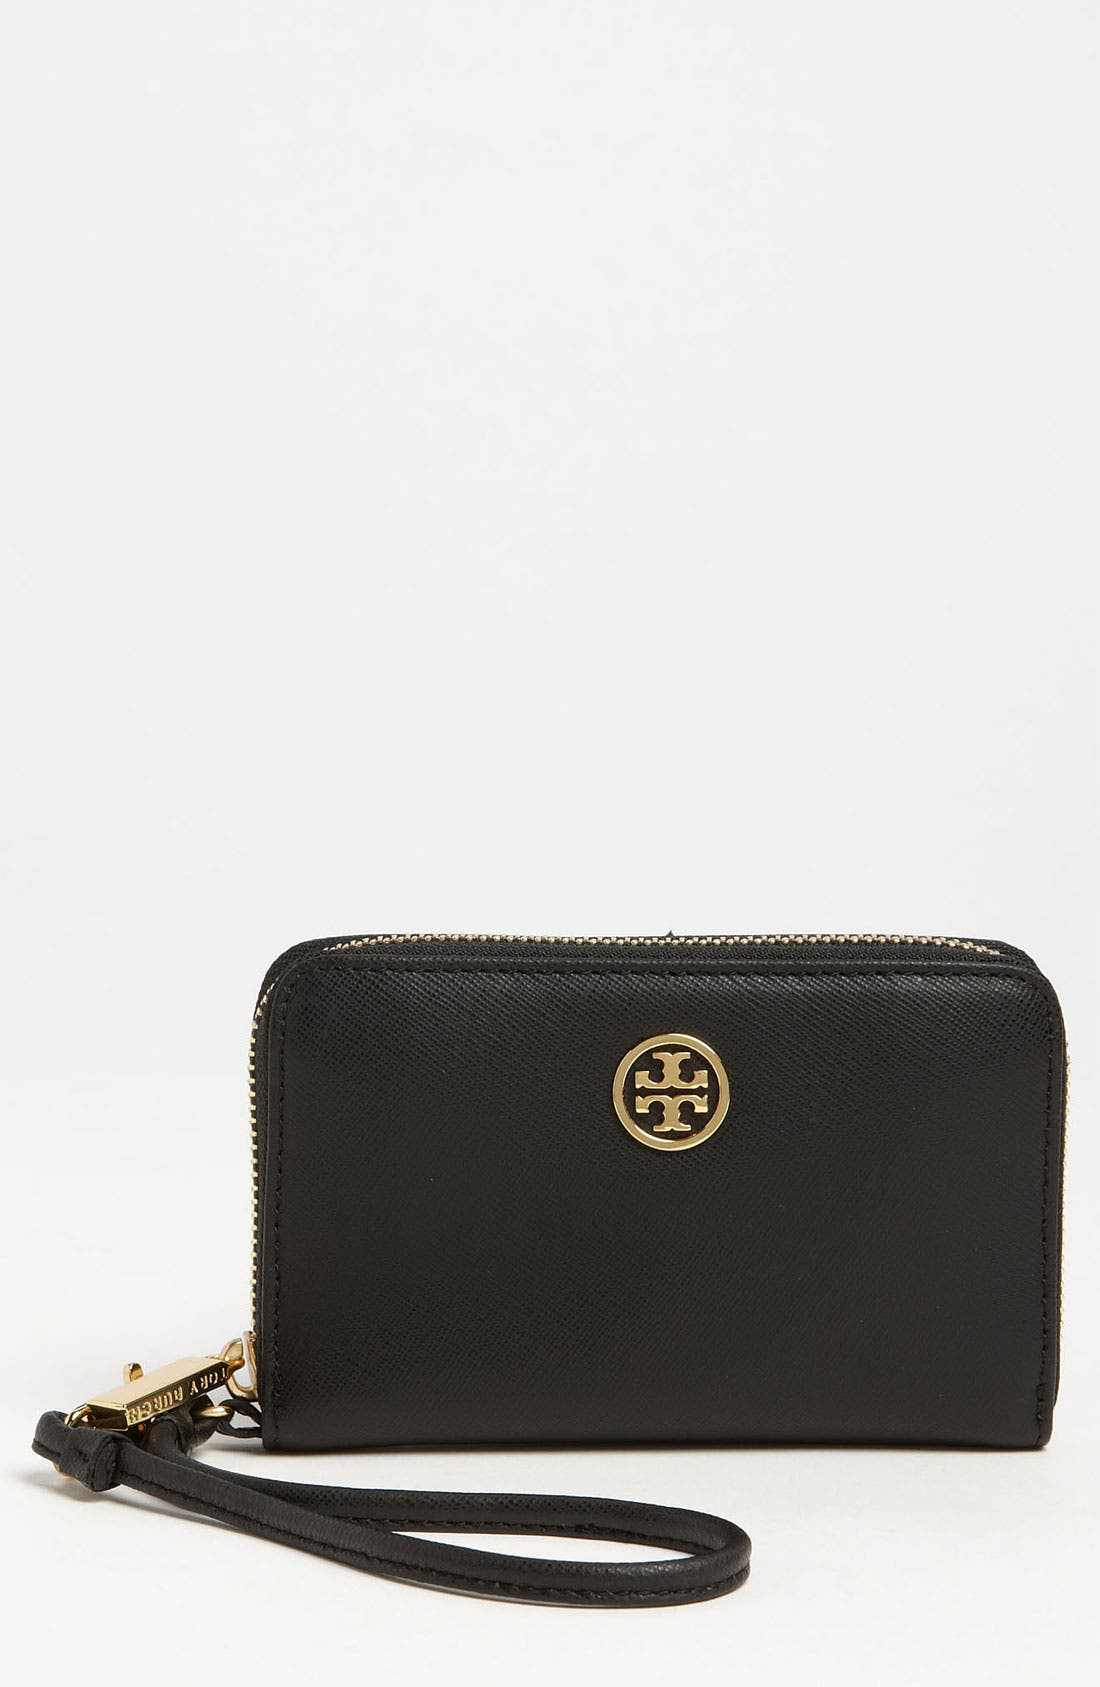 Main Image - Tory Burch 'Robinson' Smartphone Wallet